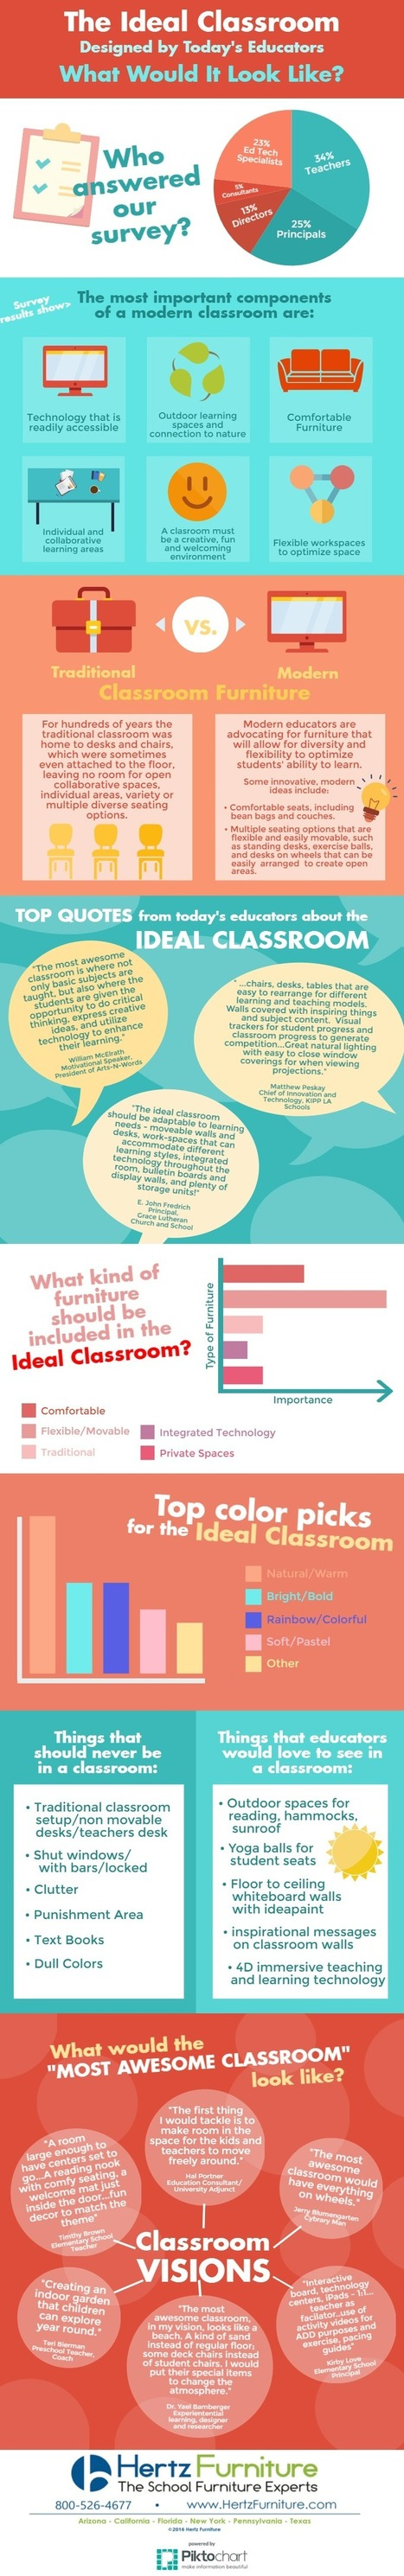 Designing The Ideal Classroom Infographic - e-Learning Infographics | Transformational Teaching and Technology | Scoop.it